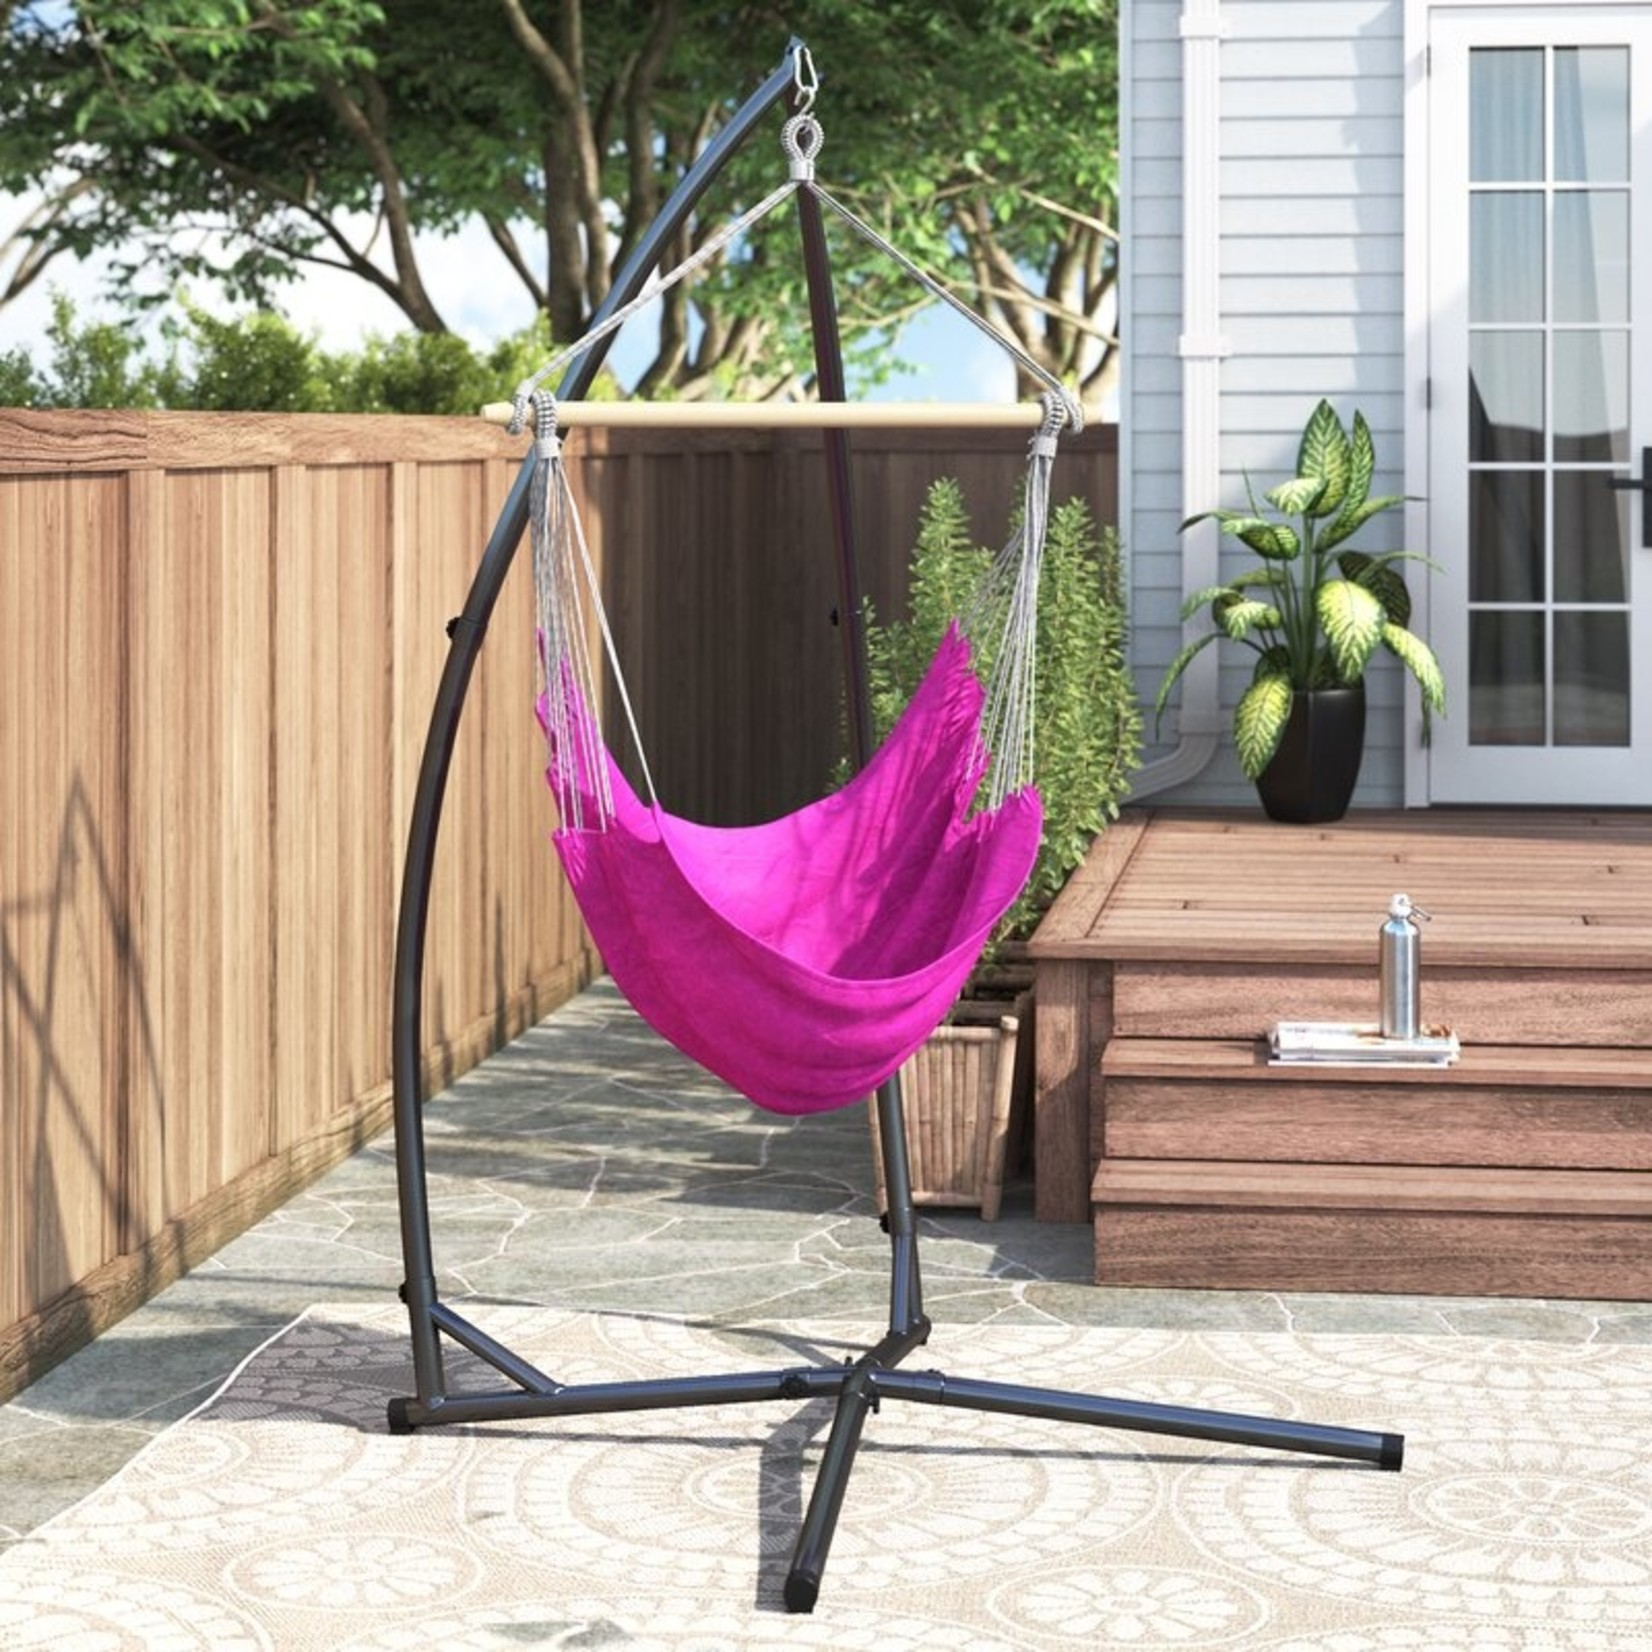 *Hartman Durable Metal Hammock Chair Stand - Chair not included